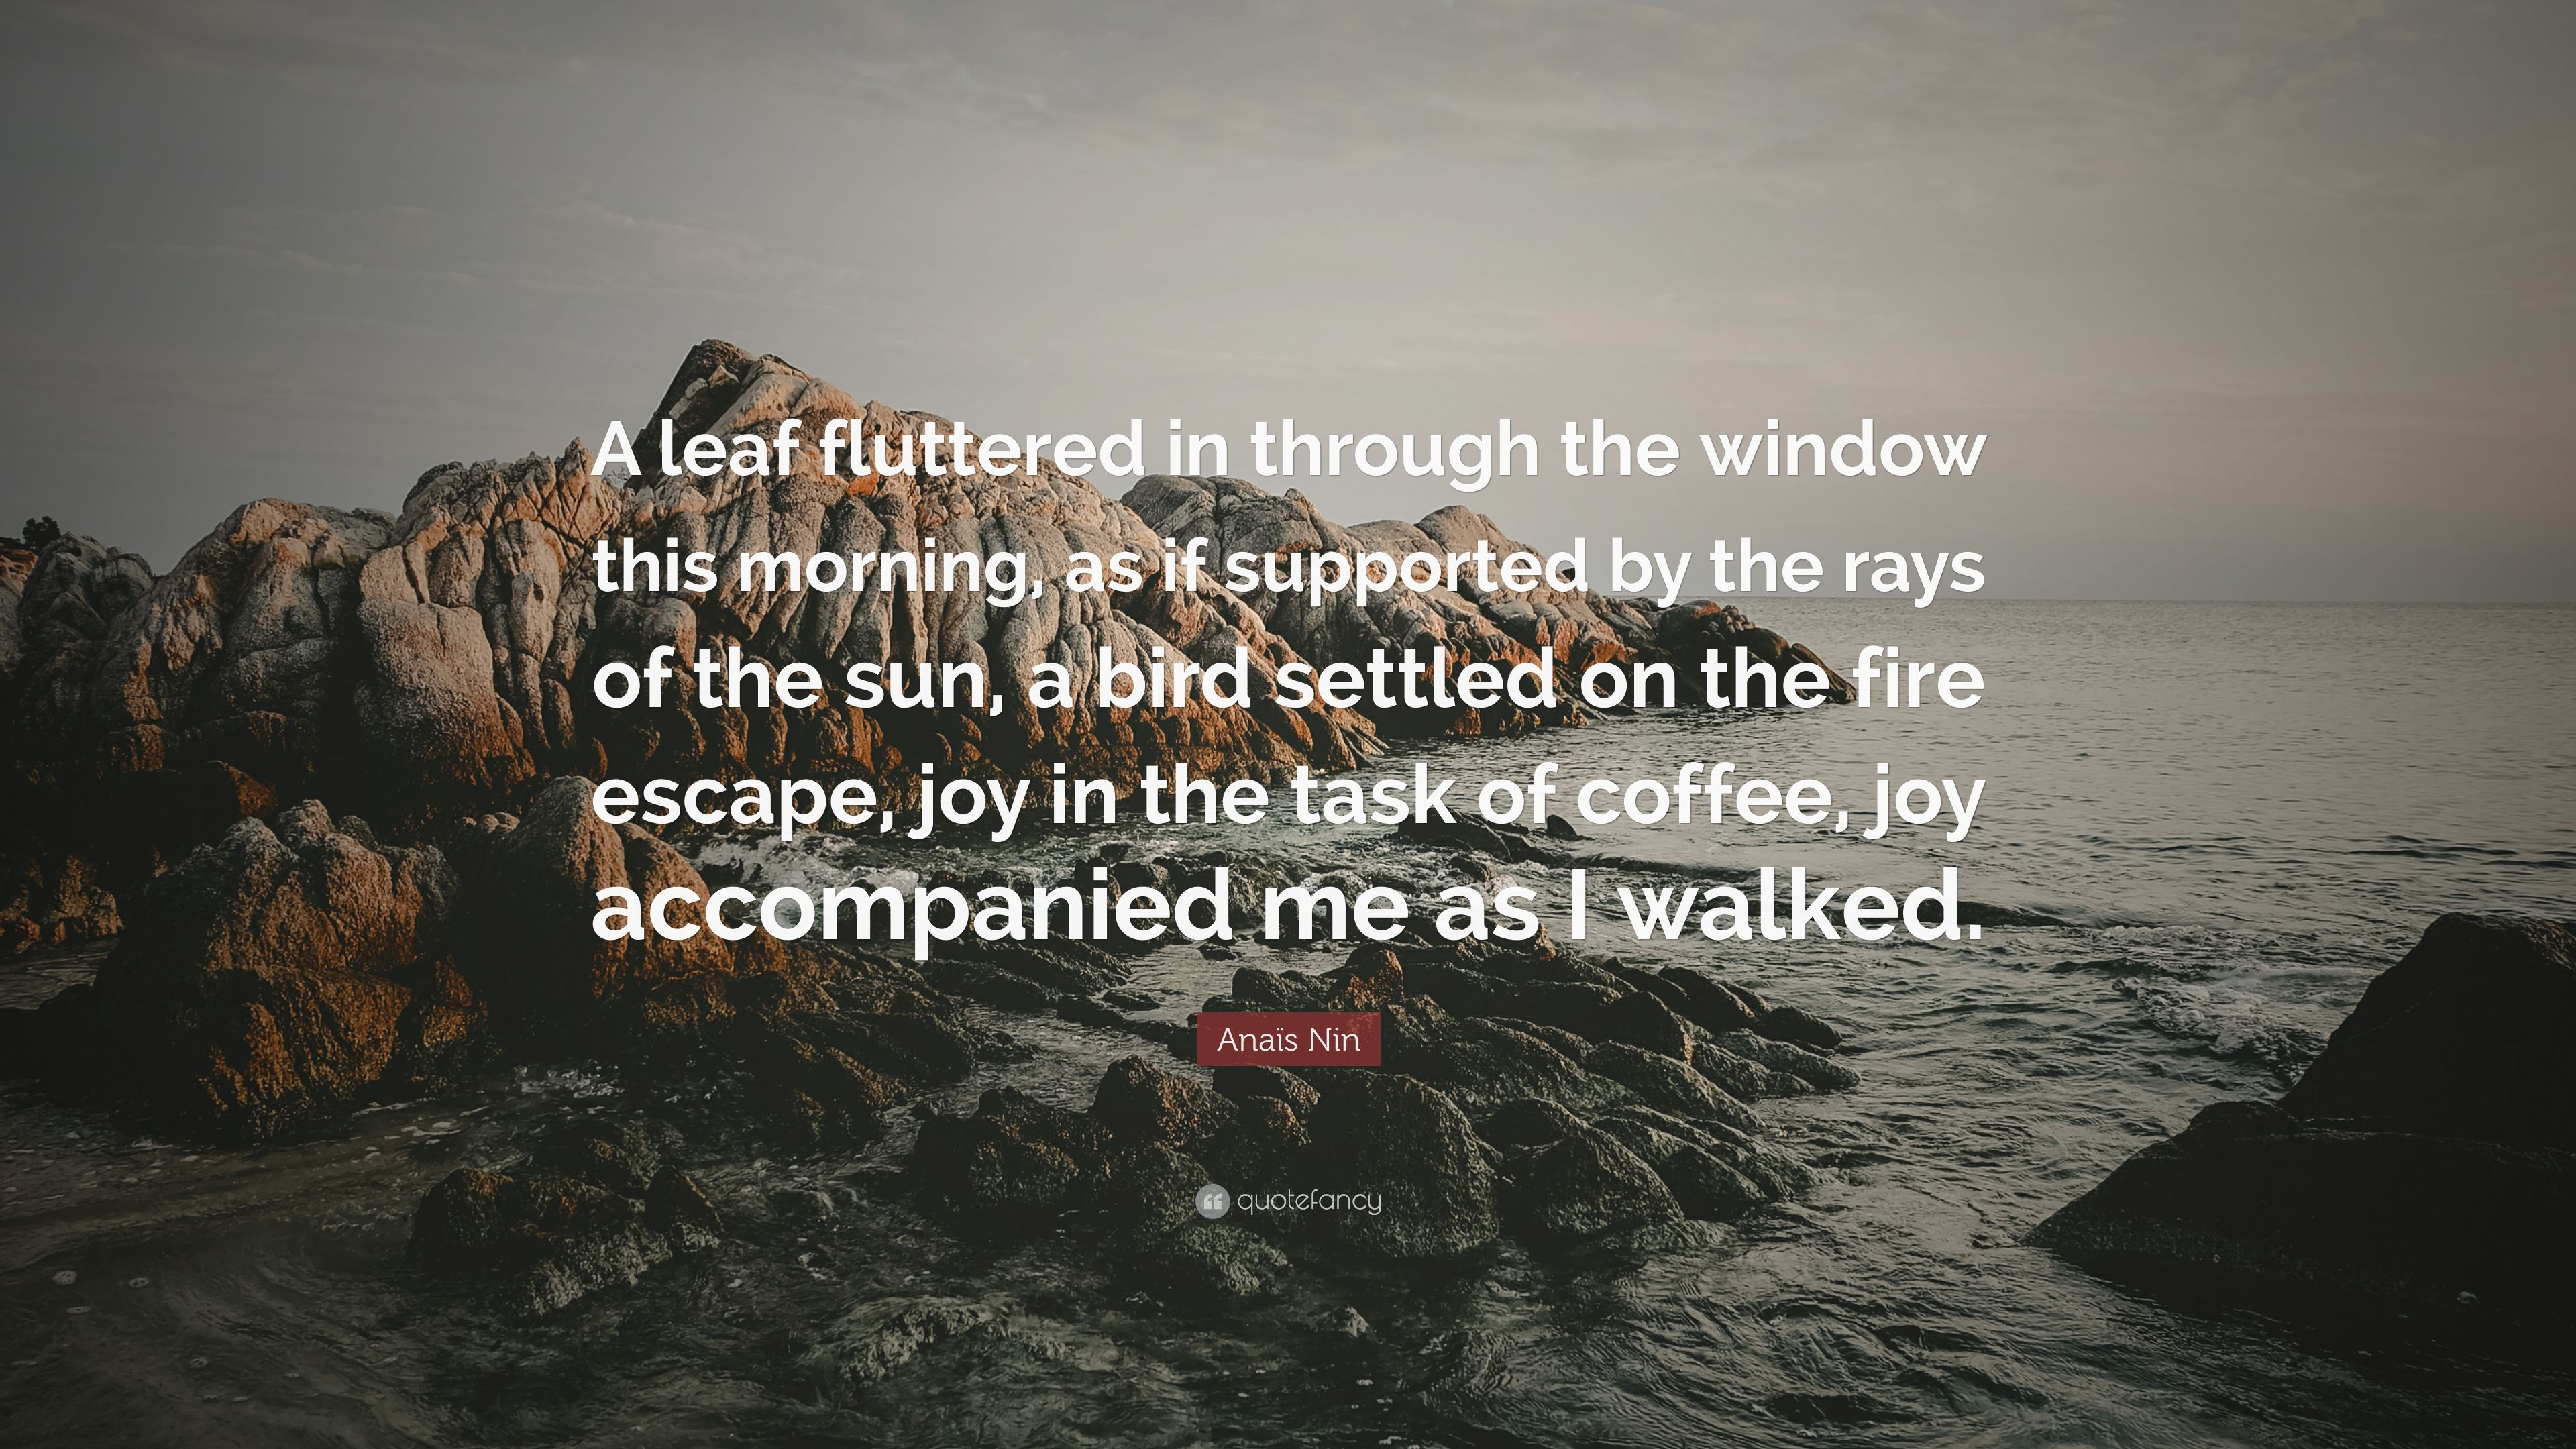 Marvelous Anaïs Nin Quote: U201cA Leaf Fluttered In Through The Window This Morning, As